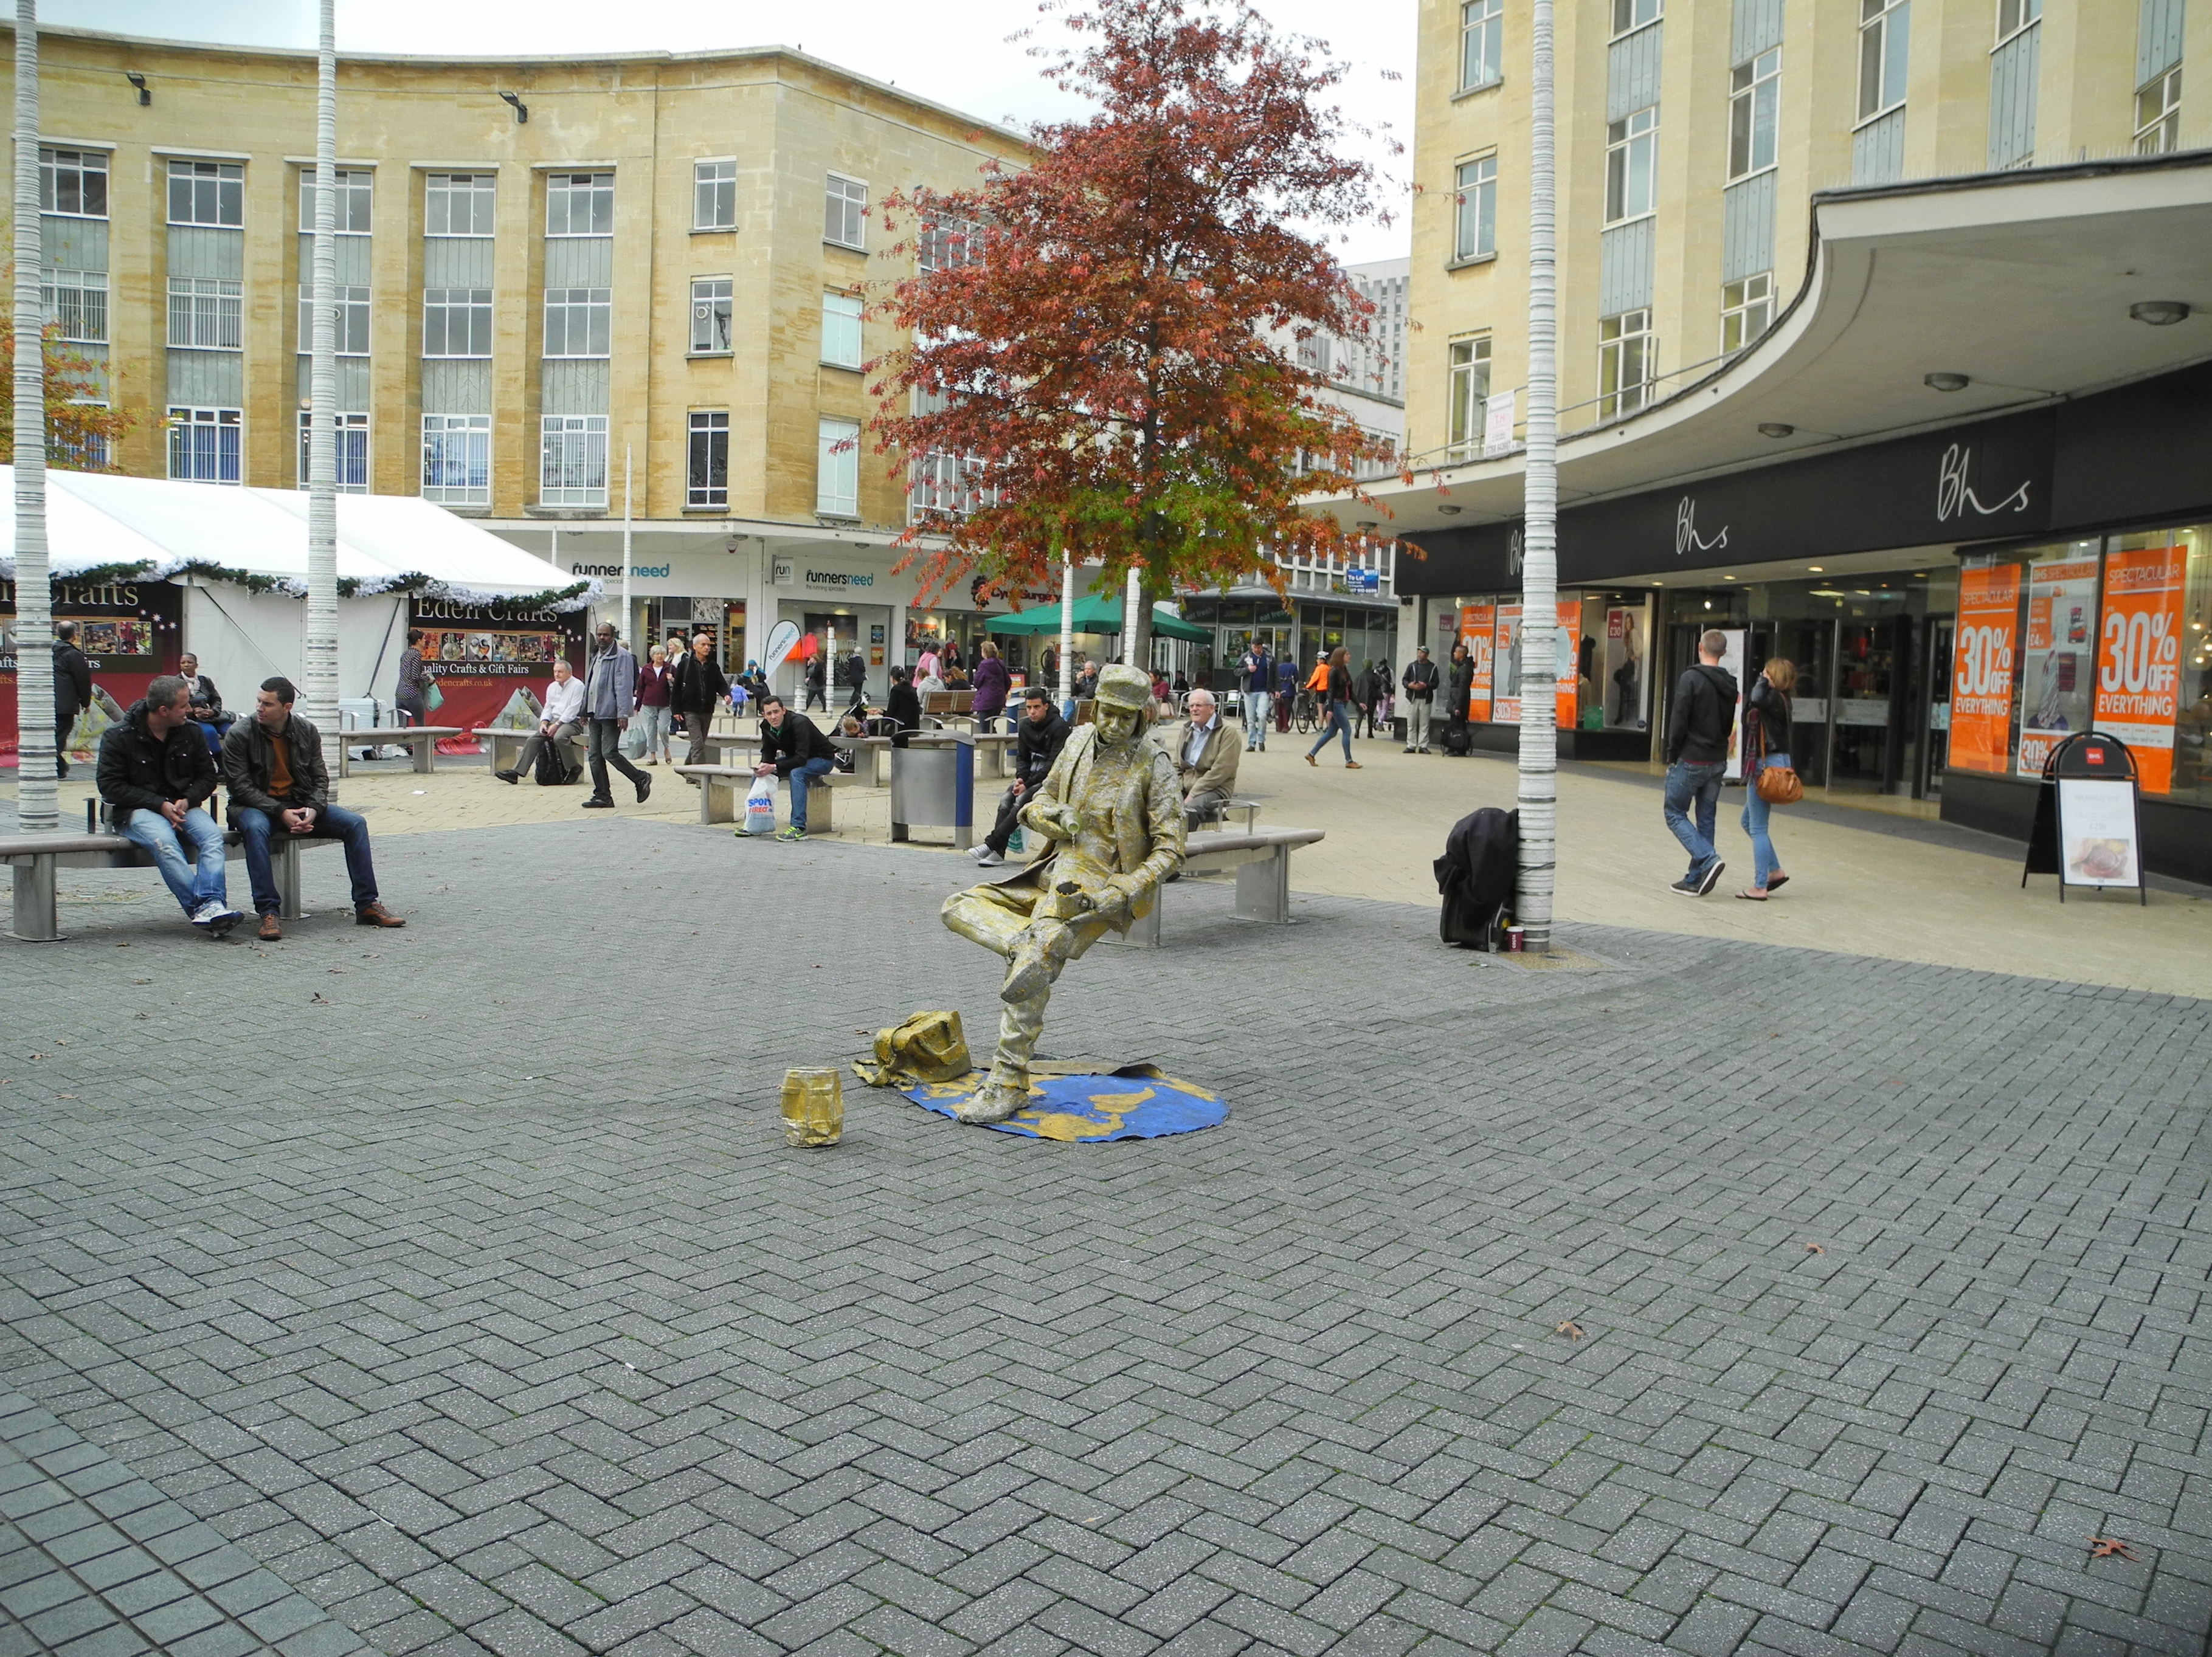 Living statue in the center of Bristol